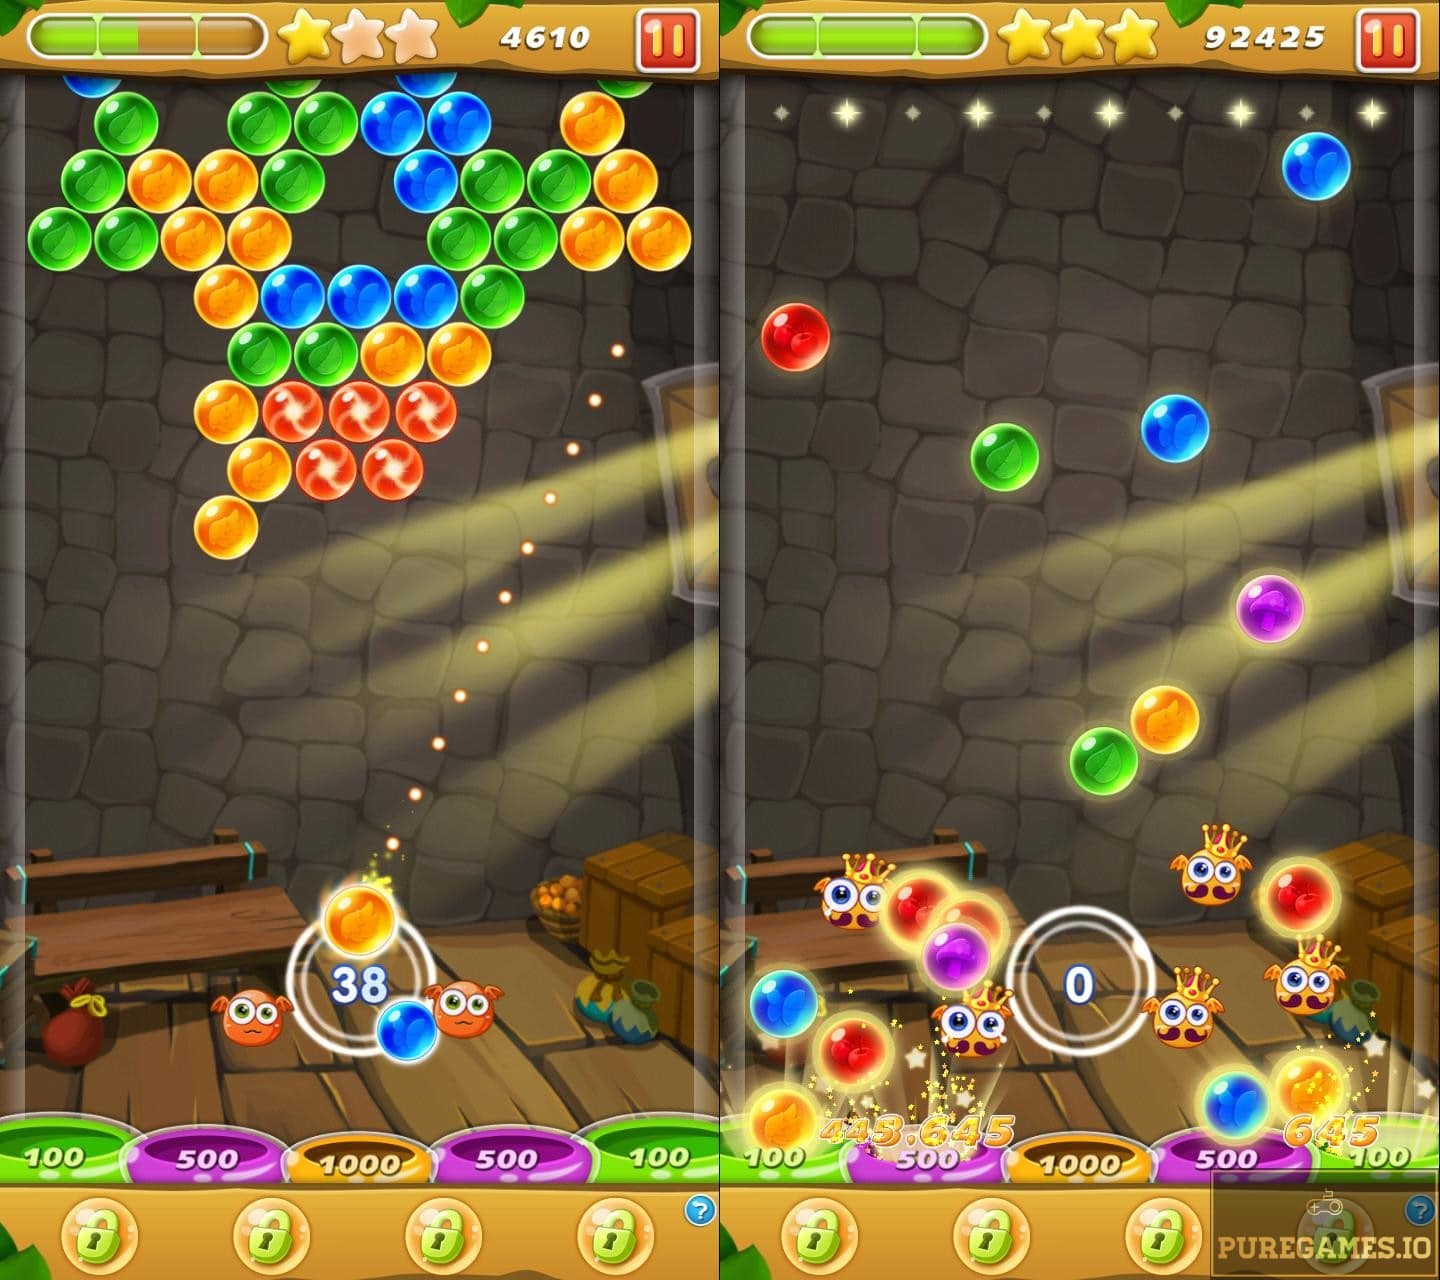 Download Bubble Shooter MOD APK for Android/iOS - PureGames